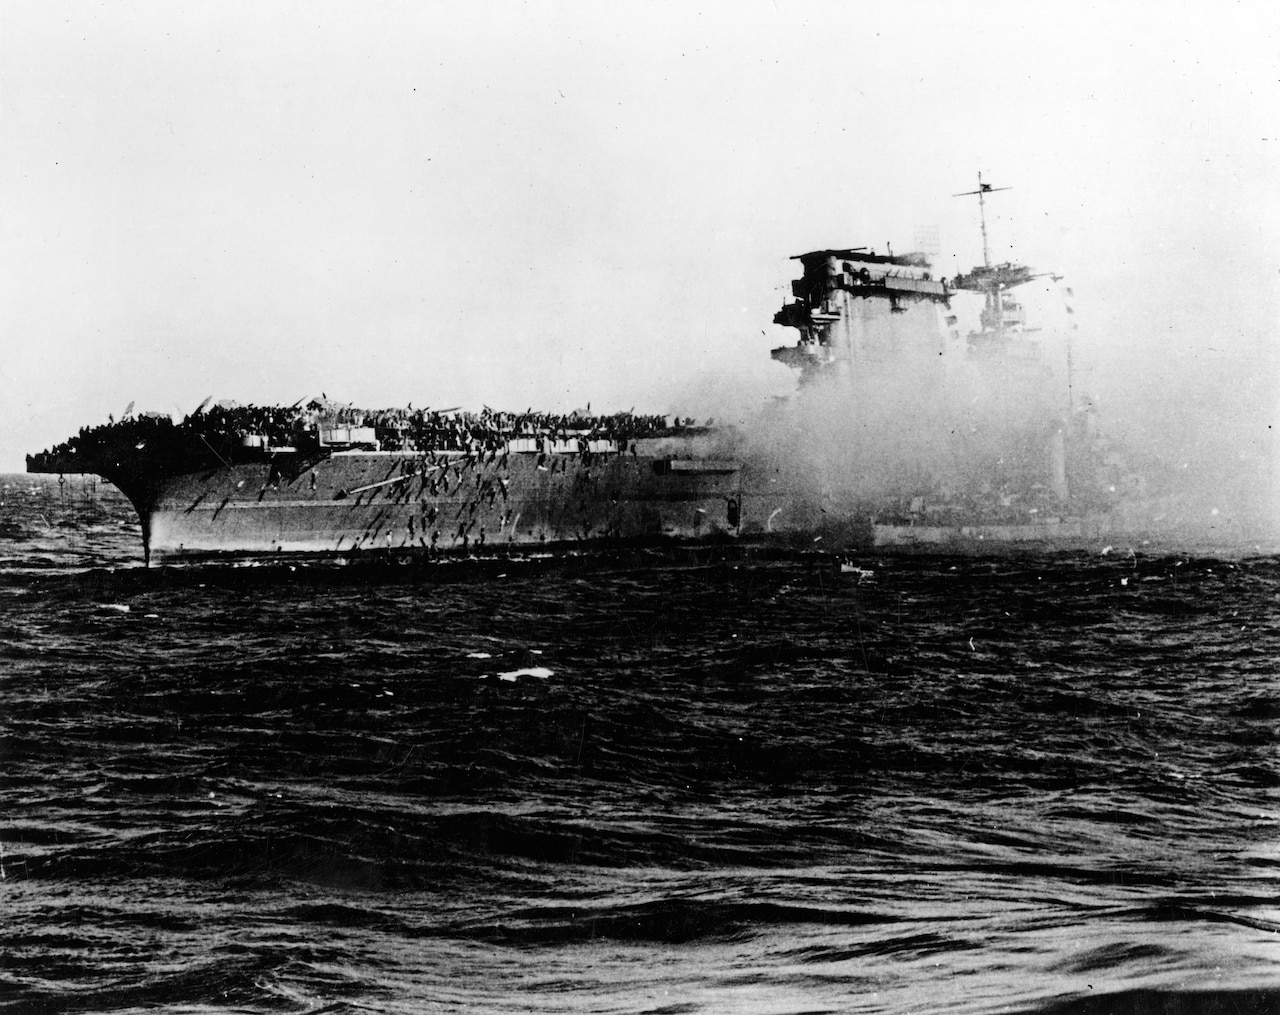 A destroyer pulls alongside the aircraft carrier USS Lexington as the carrier is abandoned during the afternoon of May 8, 1942. Note crewmen sliding down lines on Lexington's starboard quarter. Navy photo